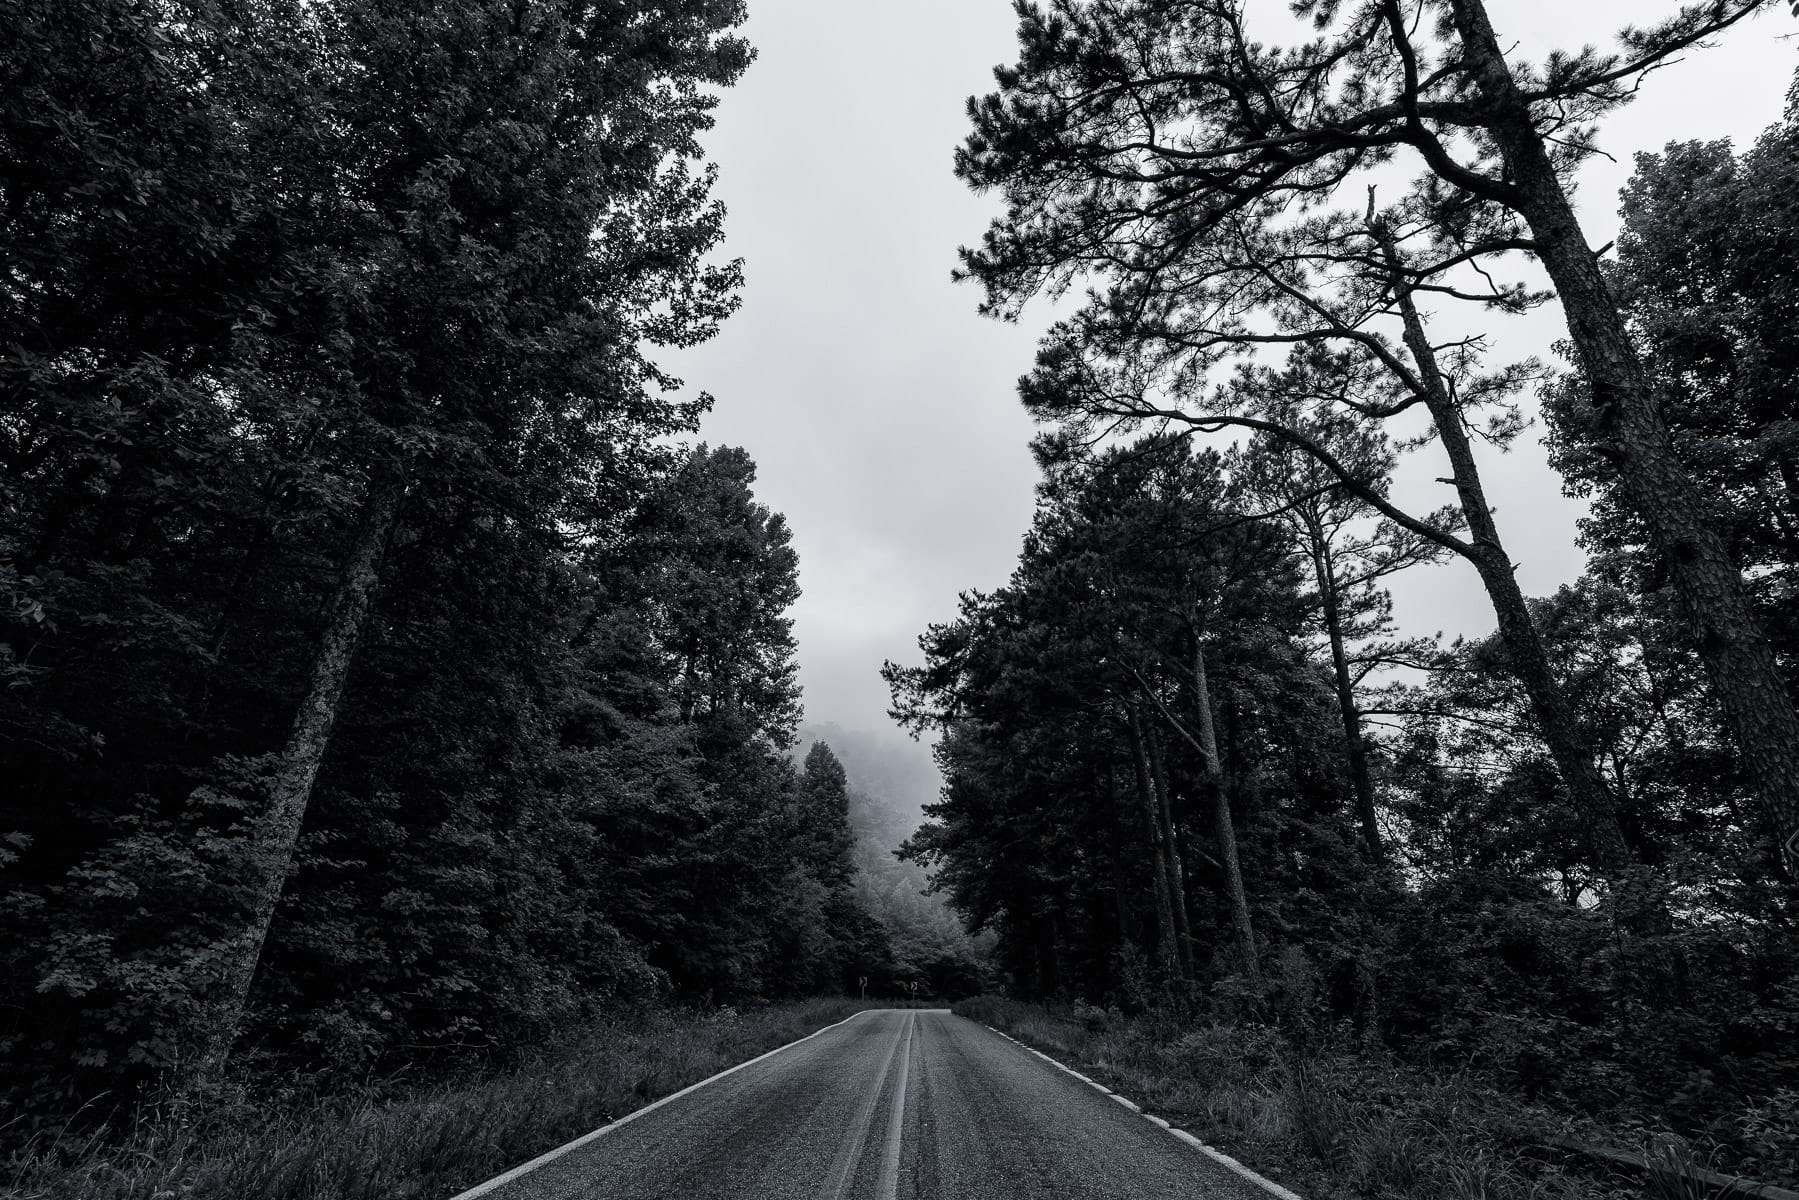 The tree-lined environs of the Talimena National Scenic Byway near Mena, Arkansas.